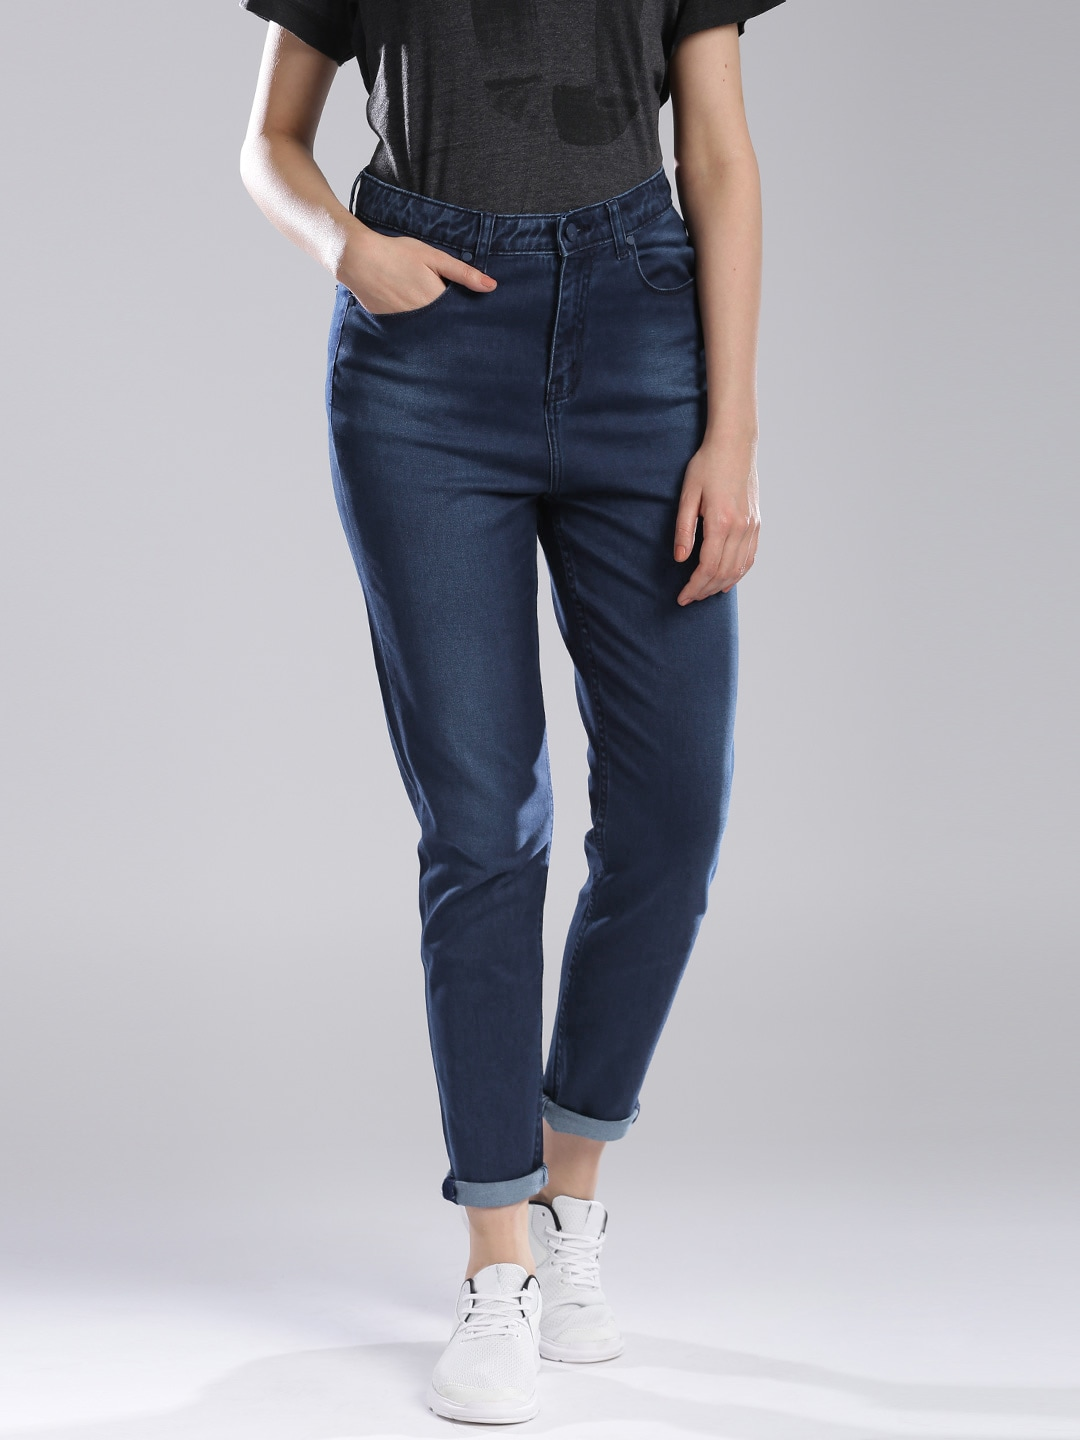 Jeans for Women - Buy Ladies Jeans Online in India | Myntra